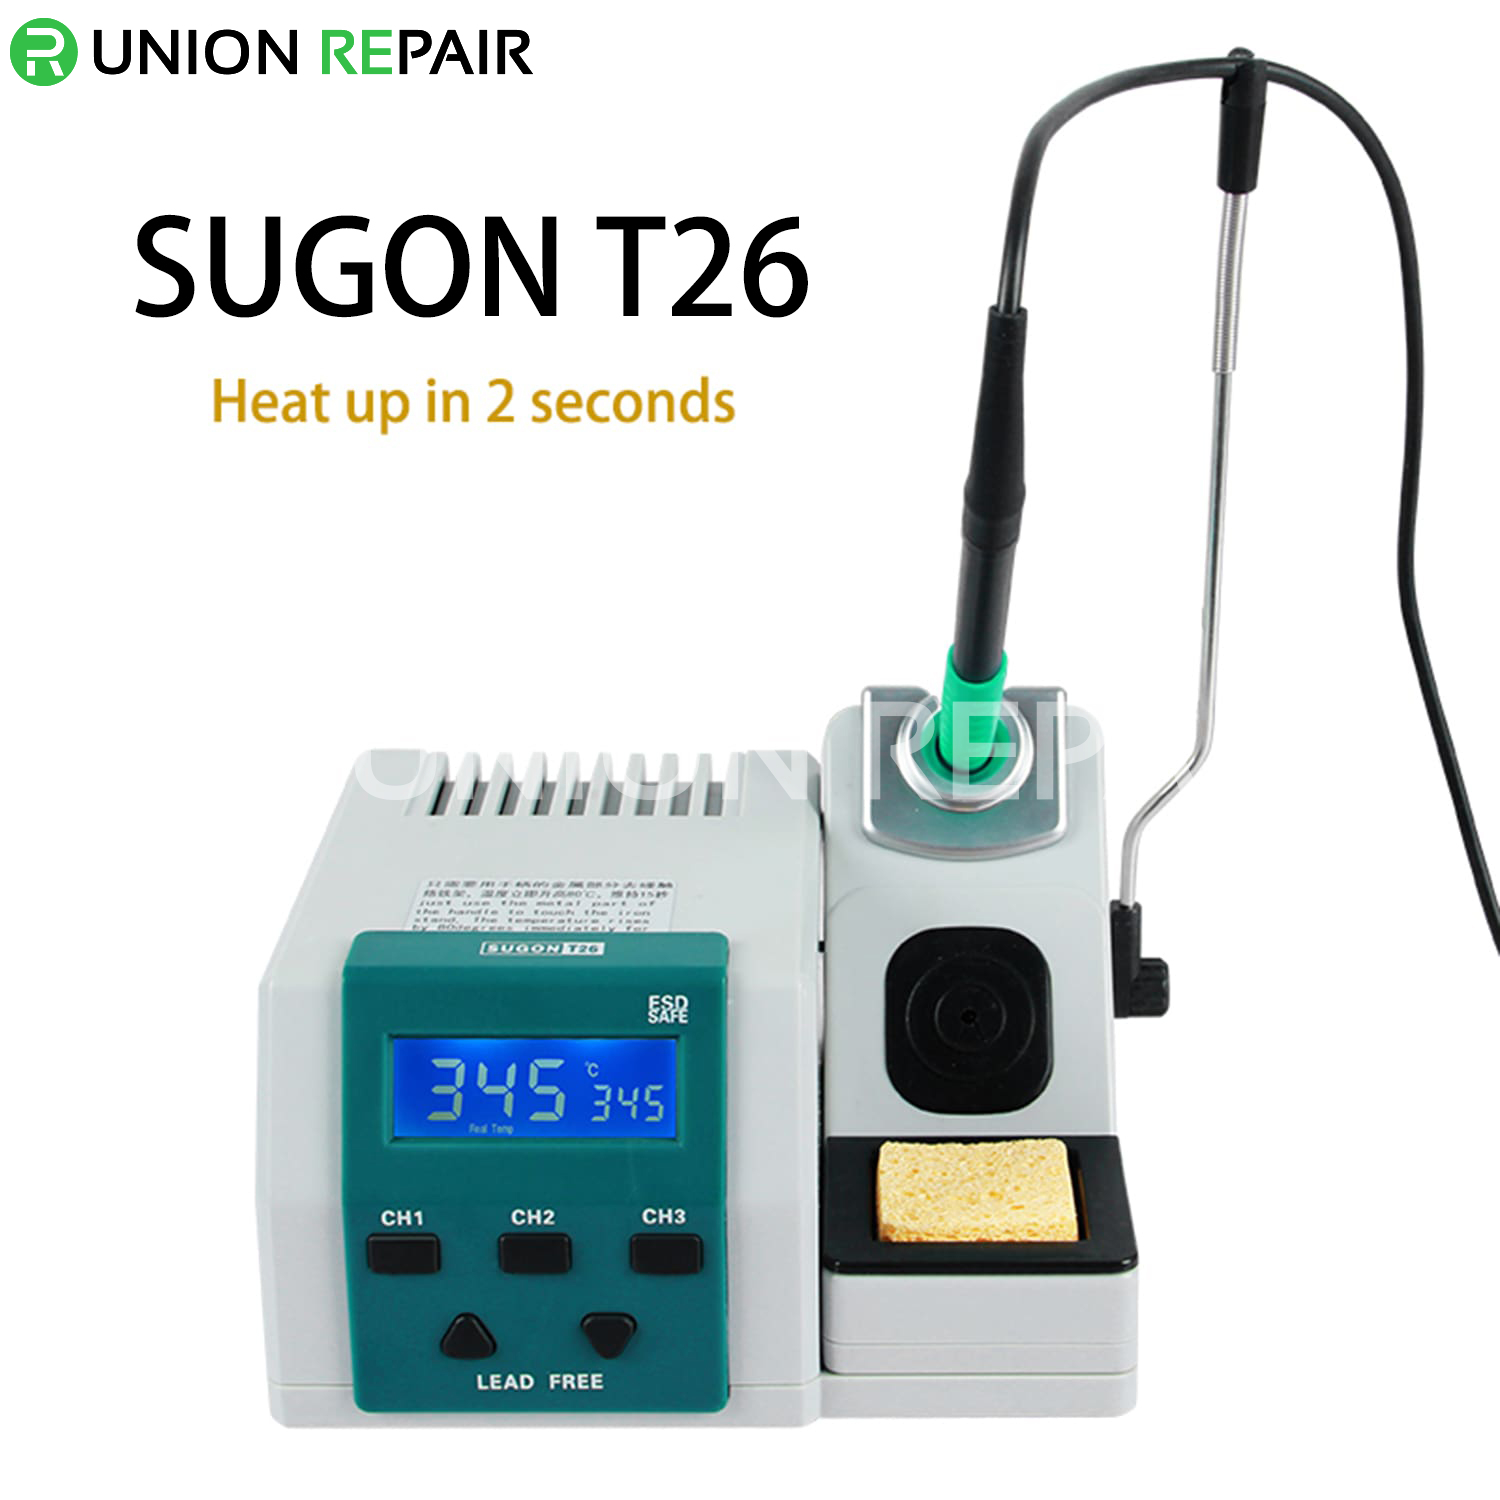 20143-sugon-t26-precision-soldering-station-suitable-for-jbc-soldering-tip-R1